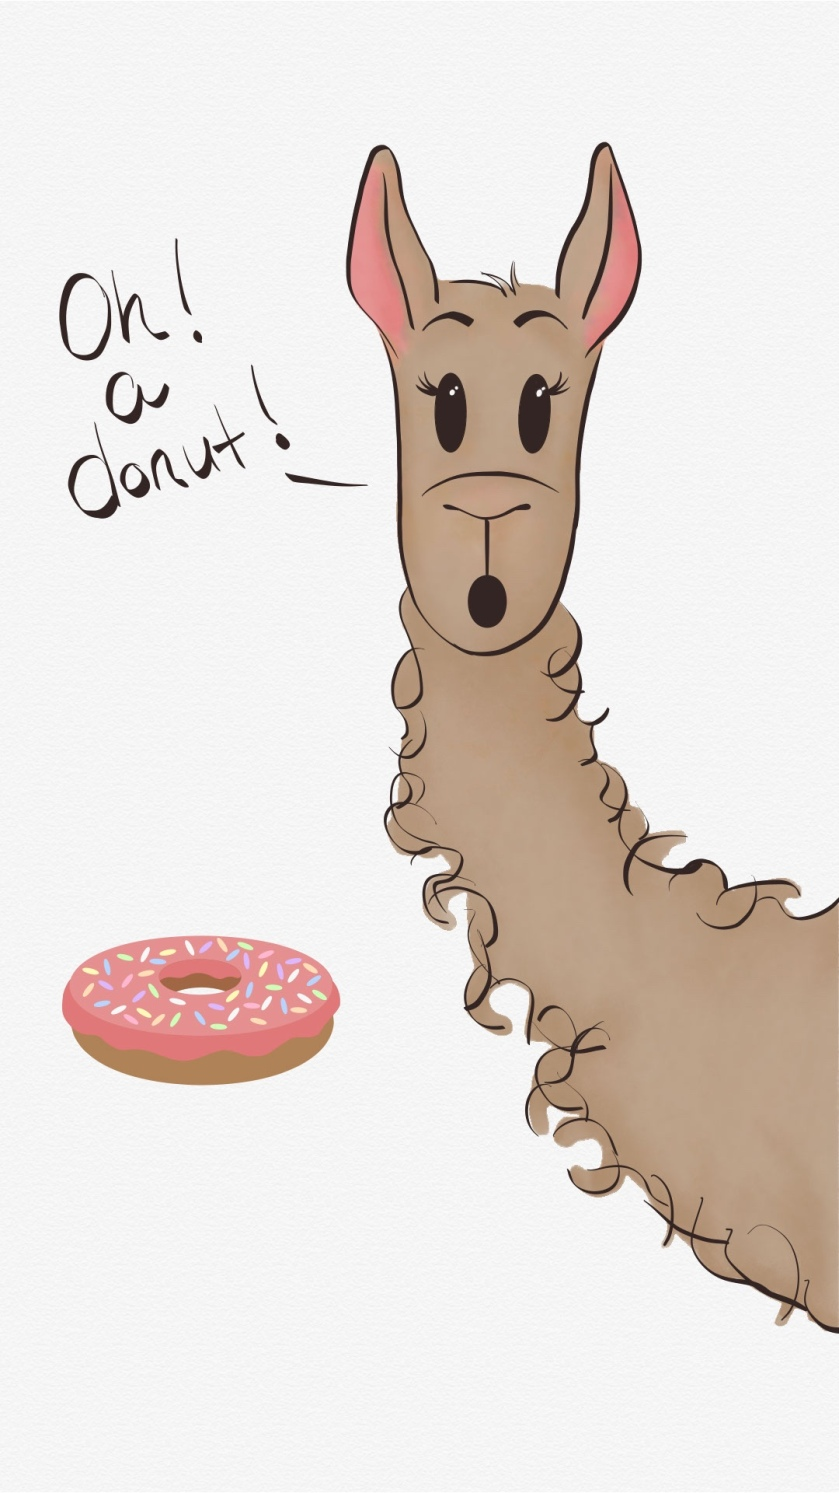 """illustration of Lulu the llama next to a donut. written text says """"Oh a donut!"""""""